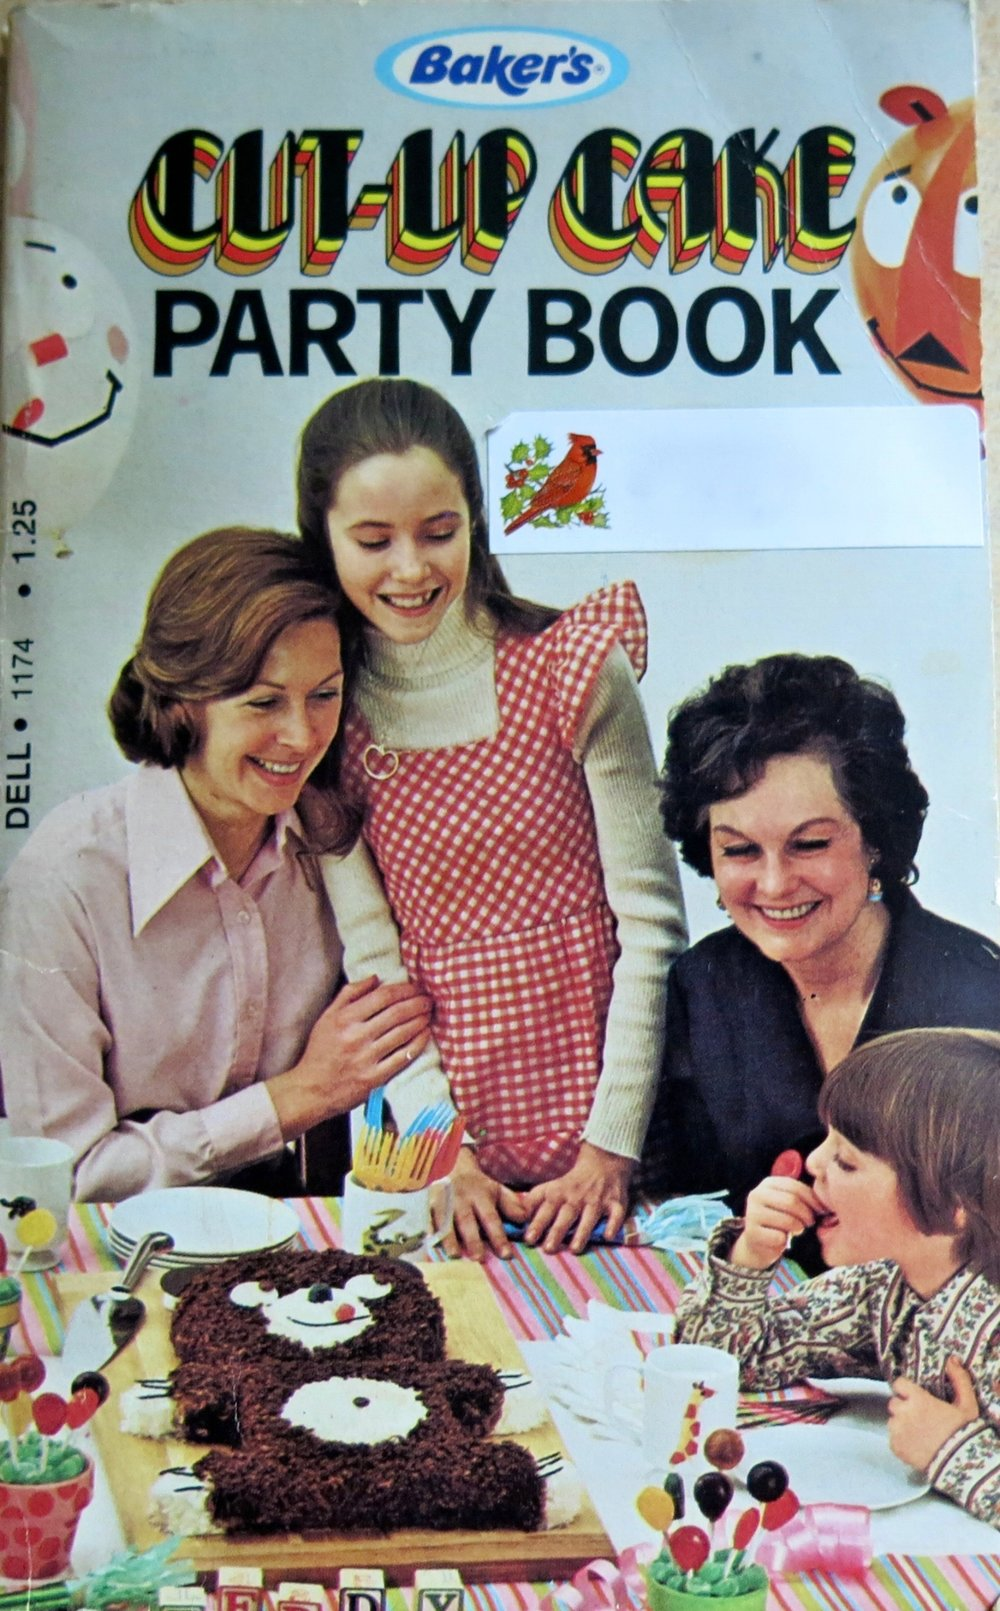 No one ever seemed to have this much fun at my birthday parties.